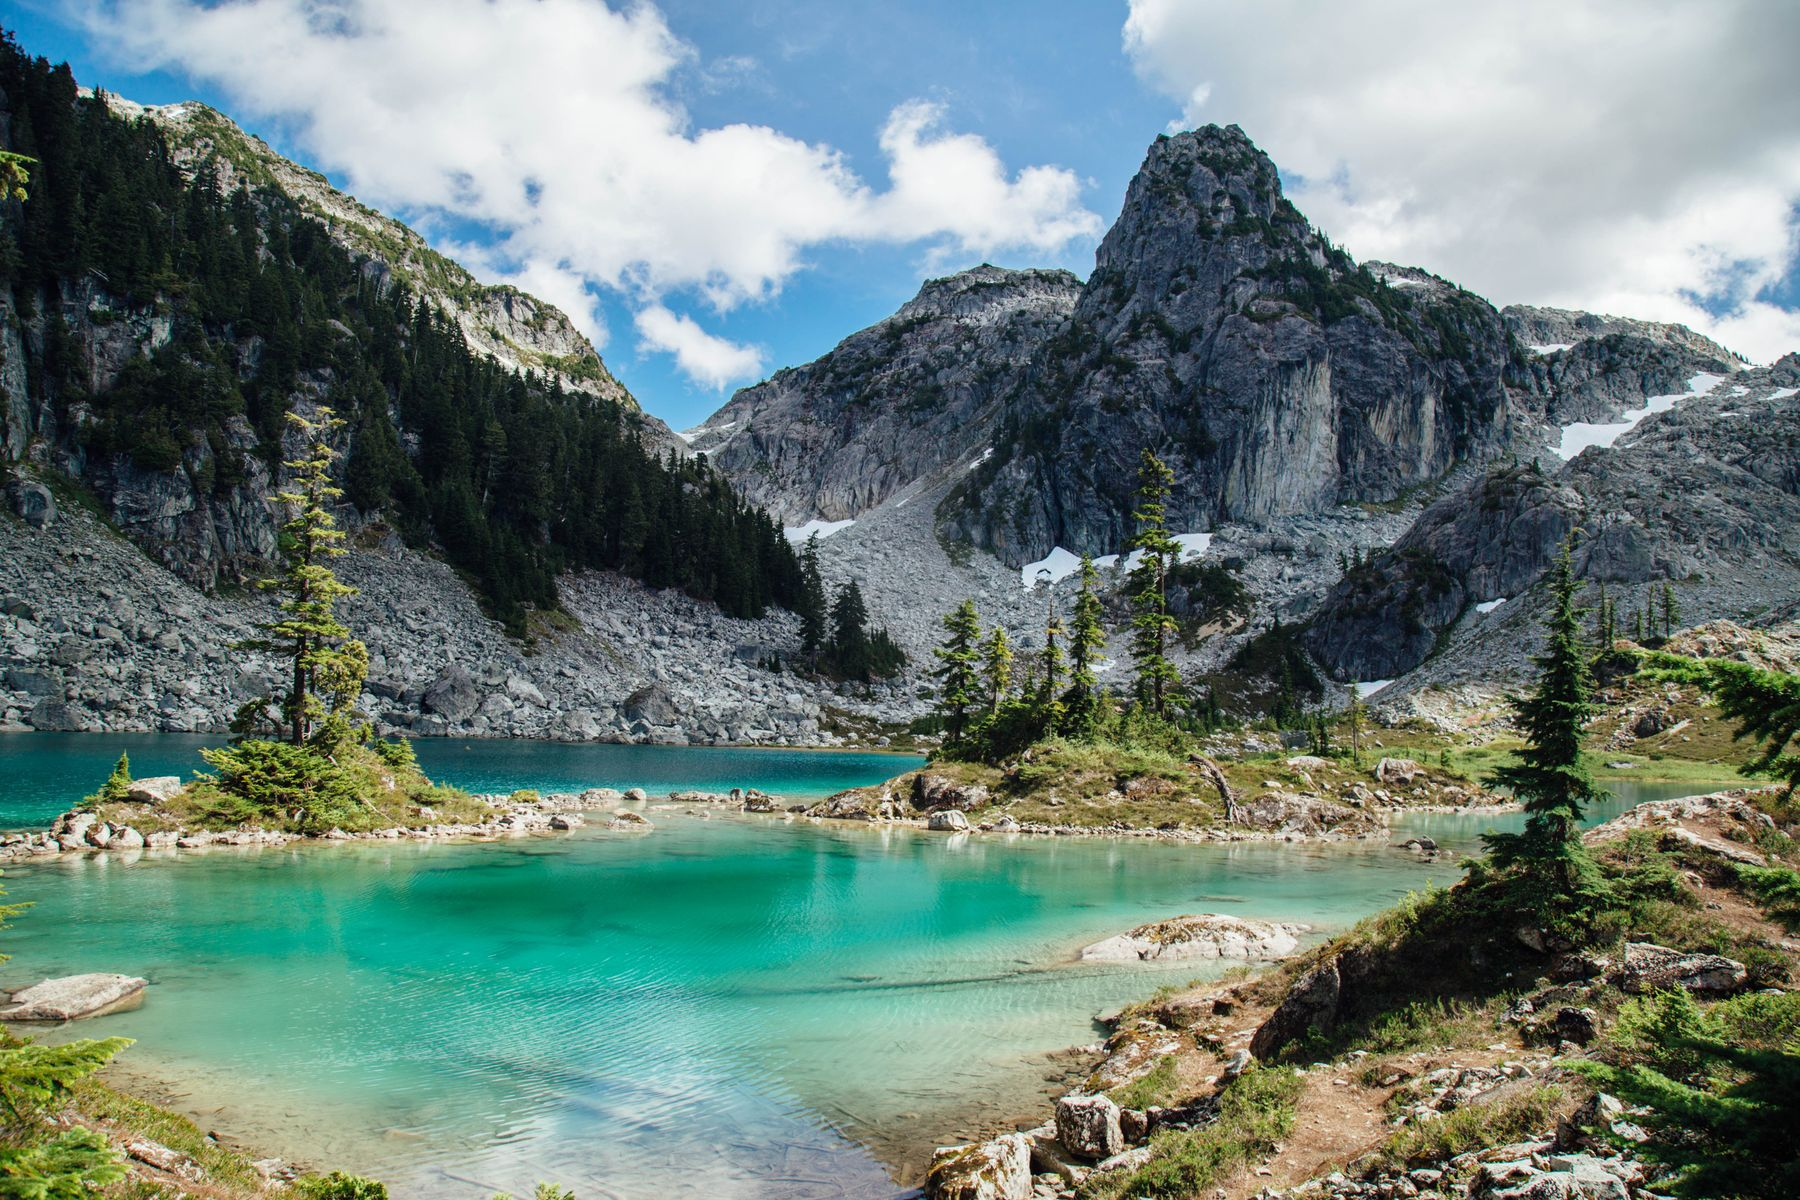 Turquoise glacier lake. Squamish is home to some of the best lakes in Canada.